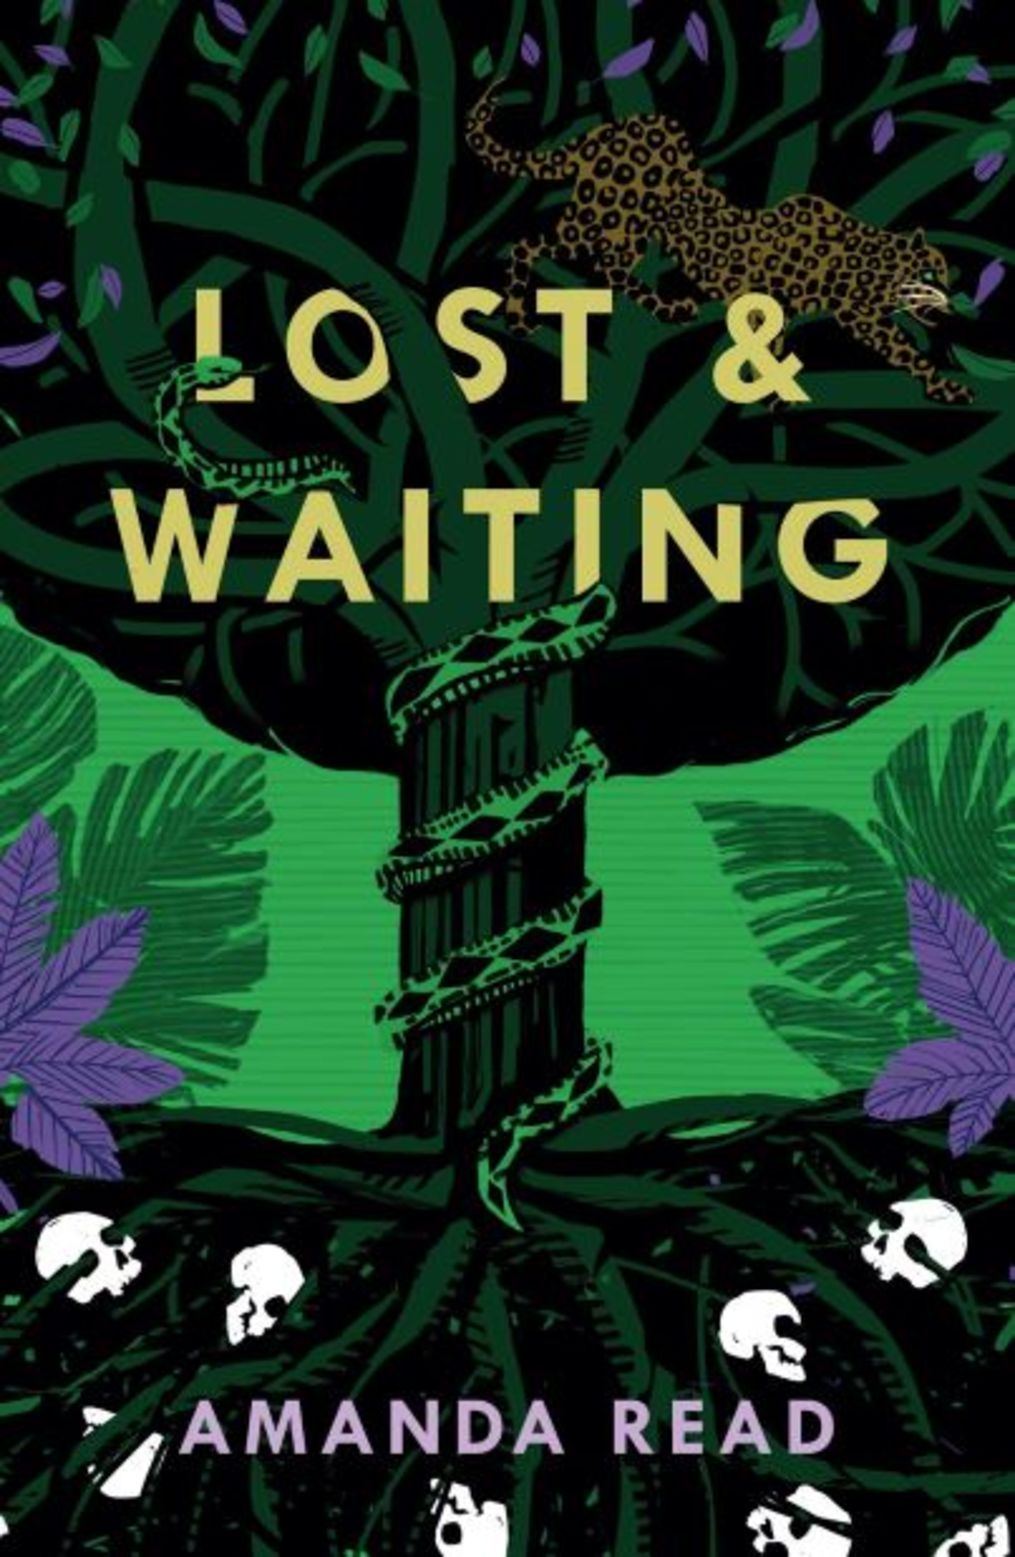 5-Amanda-Read-Guest-Blog-Magical-Techniques-Magic-Realism-and-the-Author-Susan-Shiney-Lost-and-Waiting-Bookcover